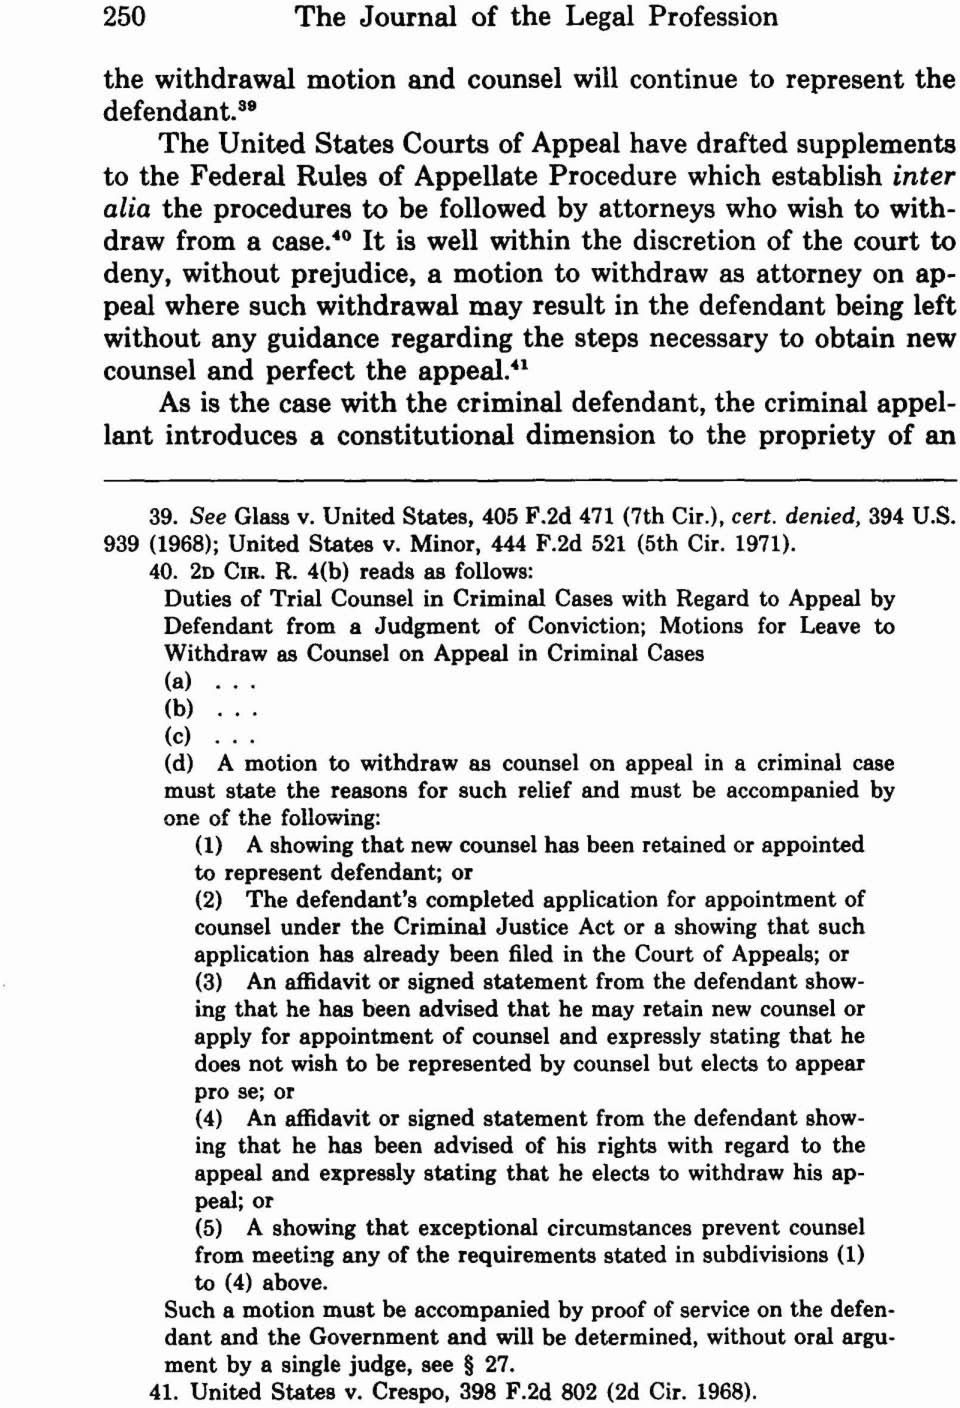 'o It is well within the discretion of the court to deny, without prejudice, a motion to withdraw as attorney on appeal where such withdrawal may result in the defendant being left without any